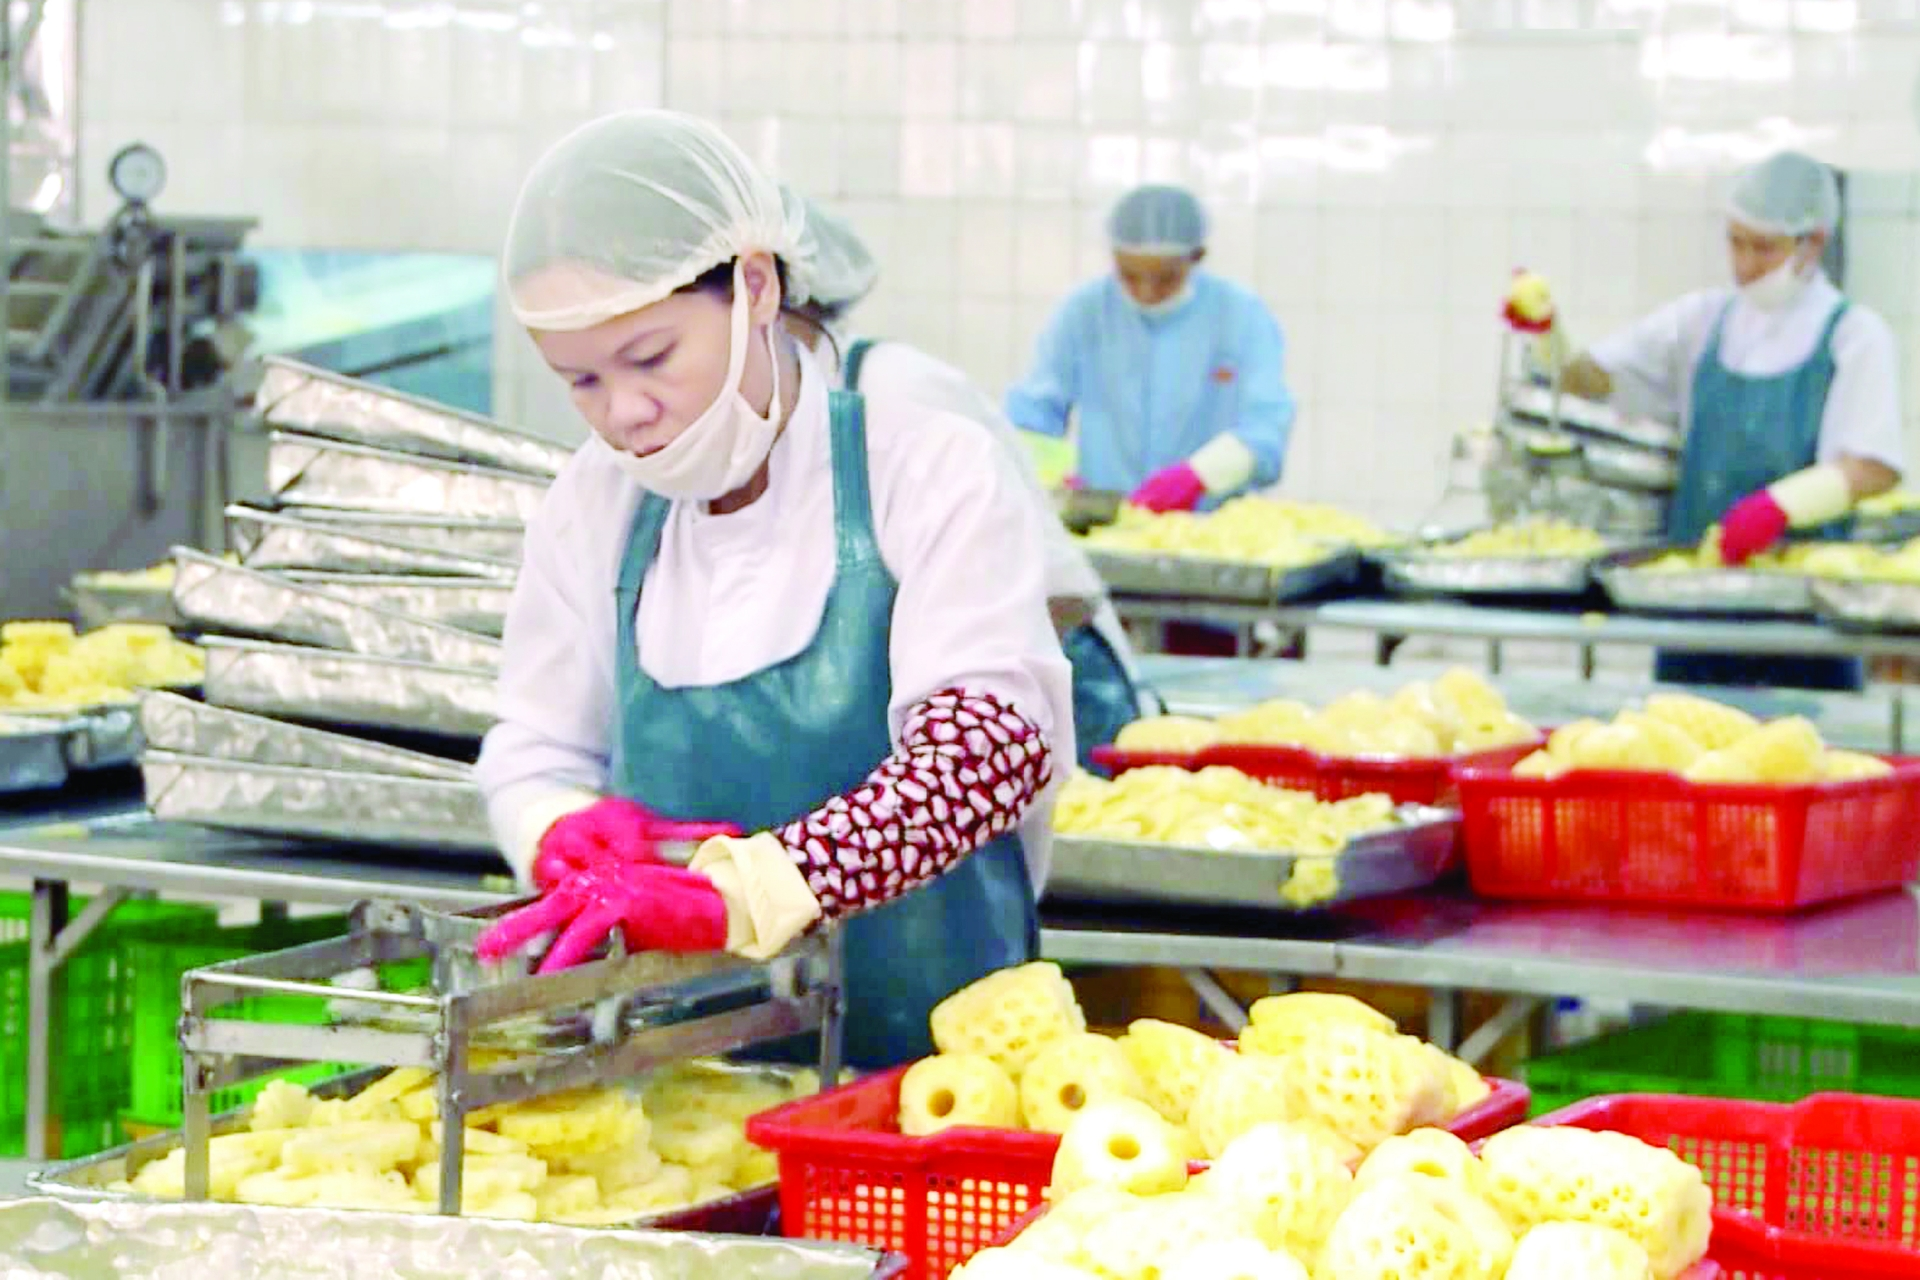 free trade deal boosts produce exports to russia